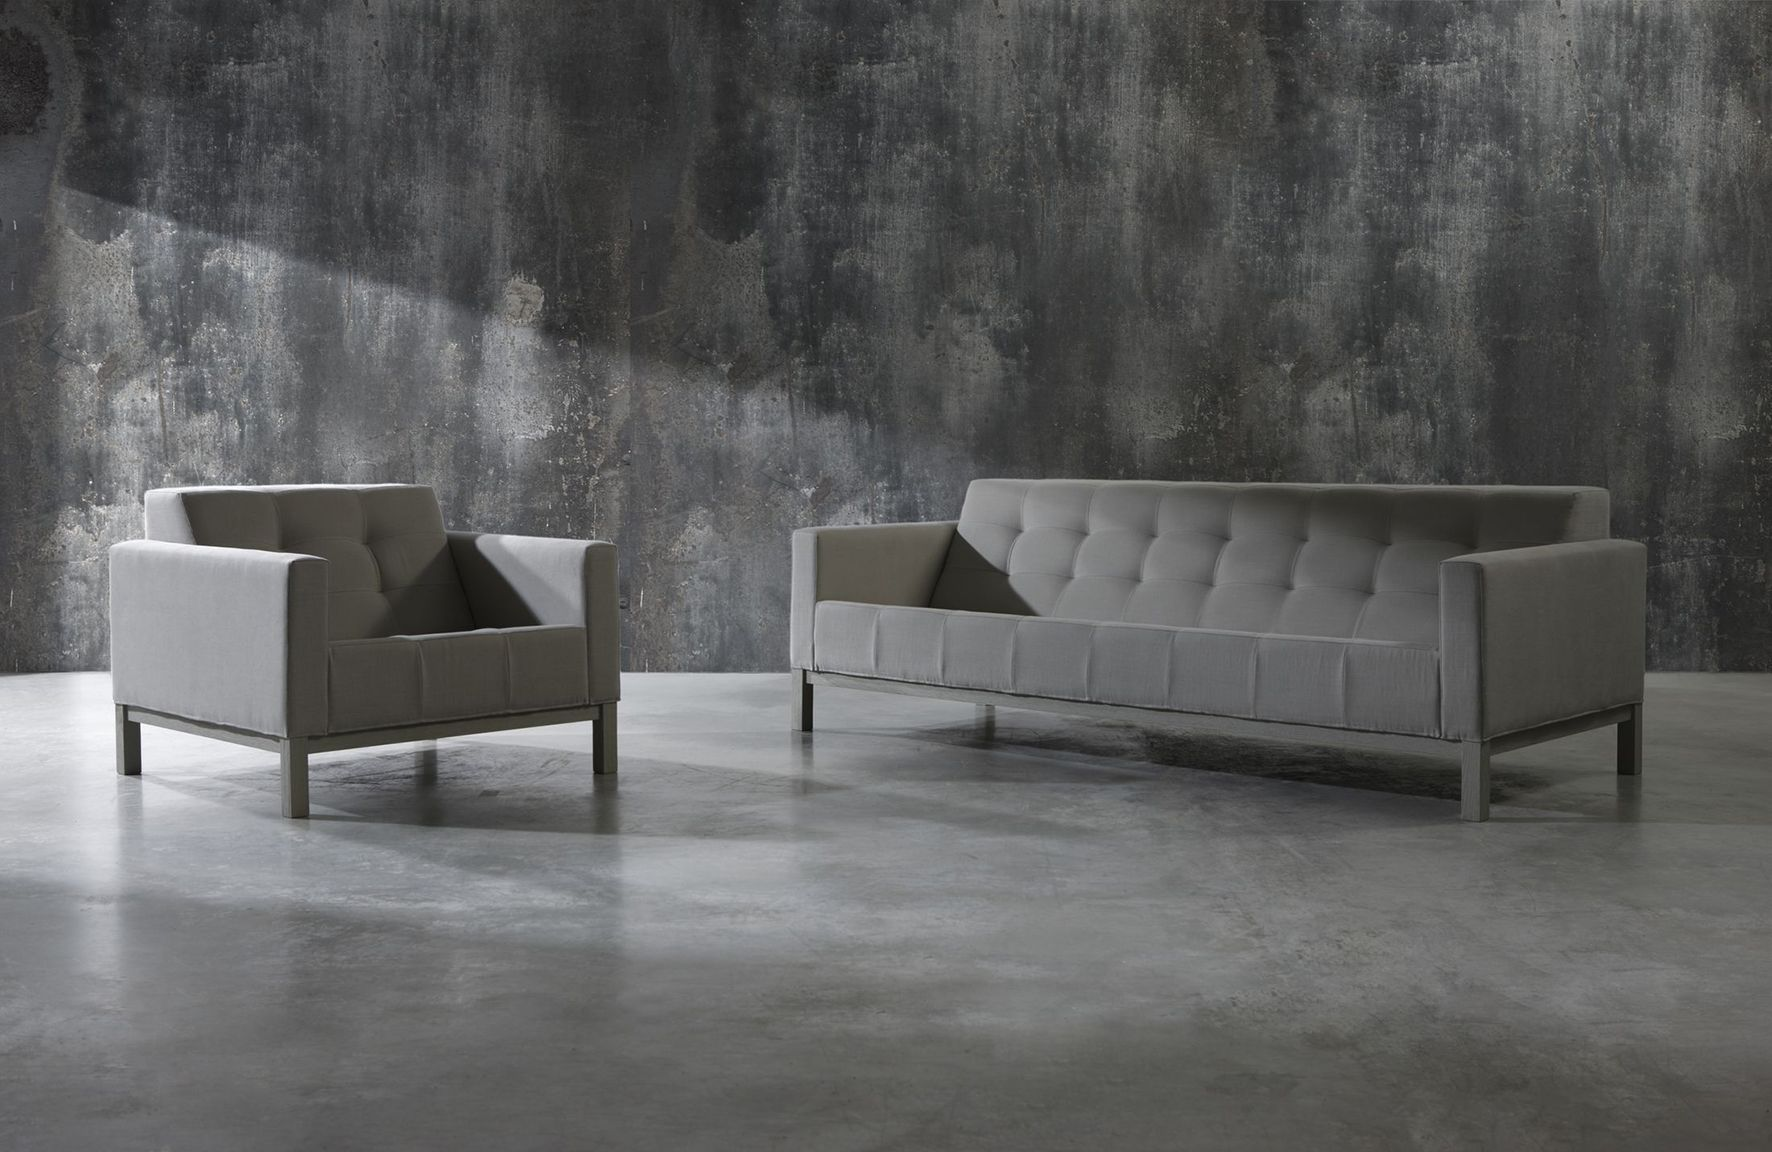 Sill N Y Sof By Joan Lao Sillones Y Sof S Pinterest Sof Y  # Muebles Joan Lao